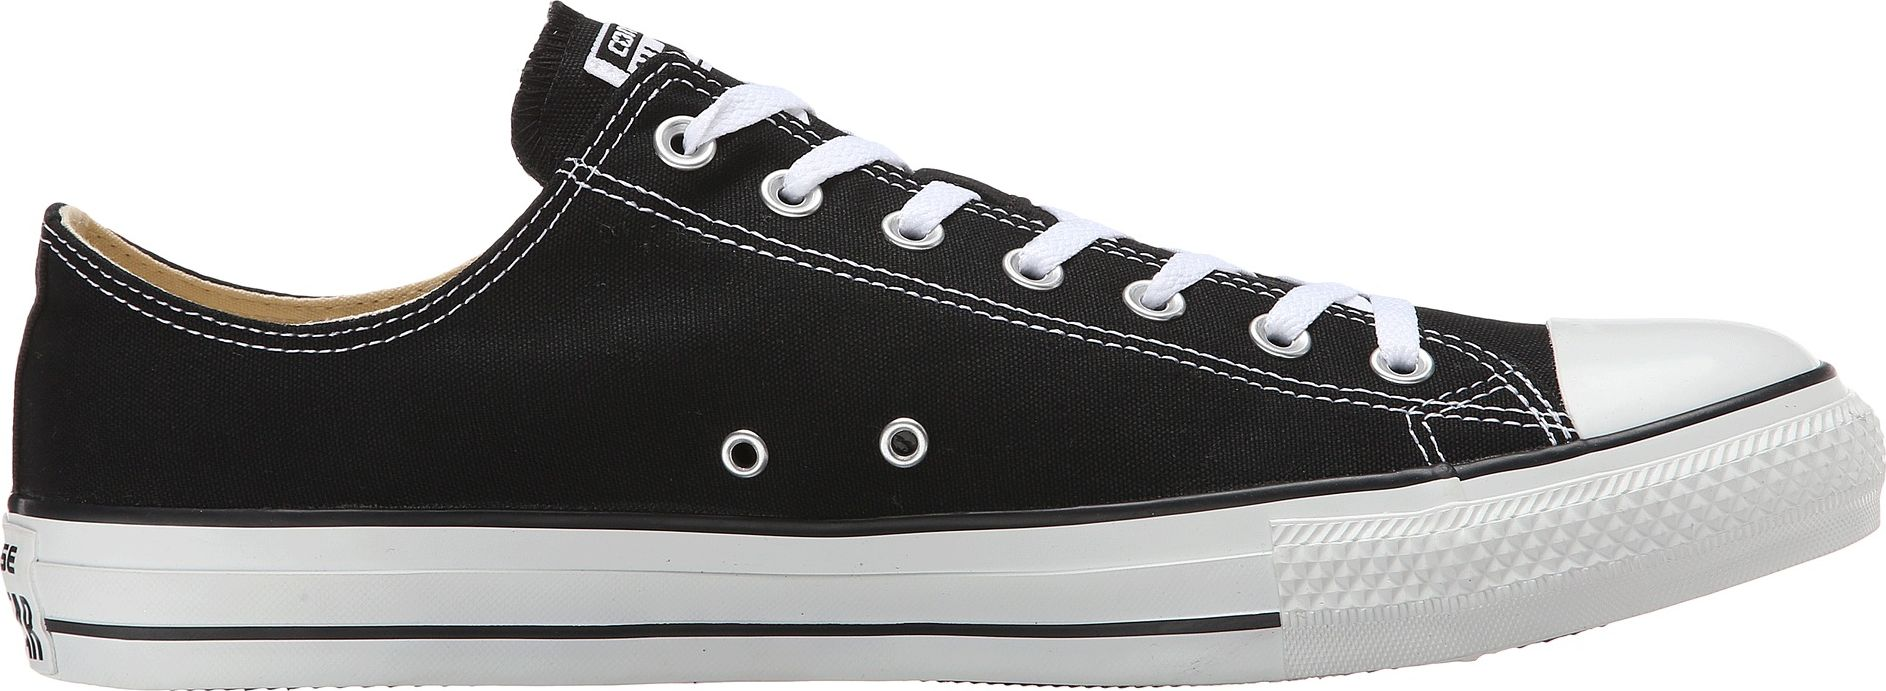 Converse Chuck Taylor All Star Ox Black/White 46,5